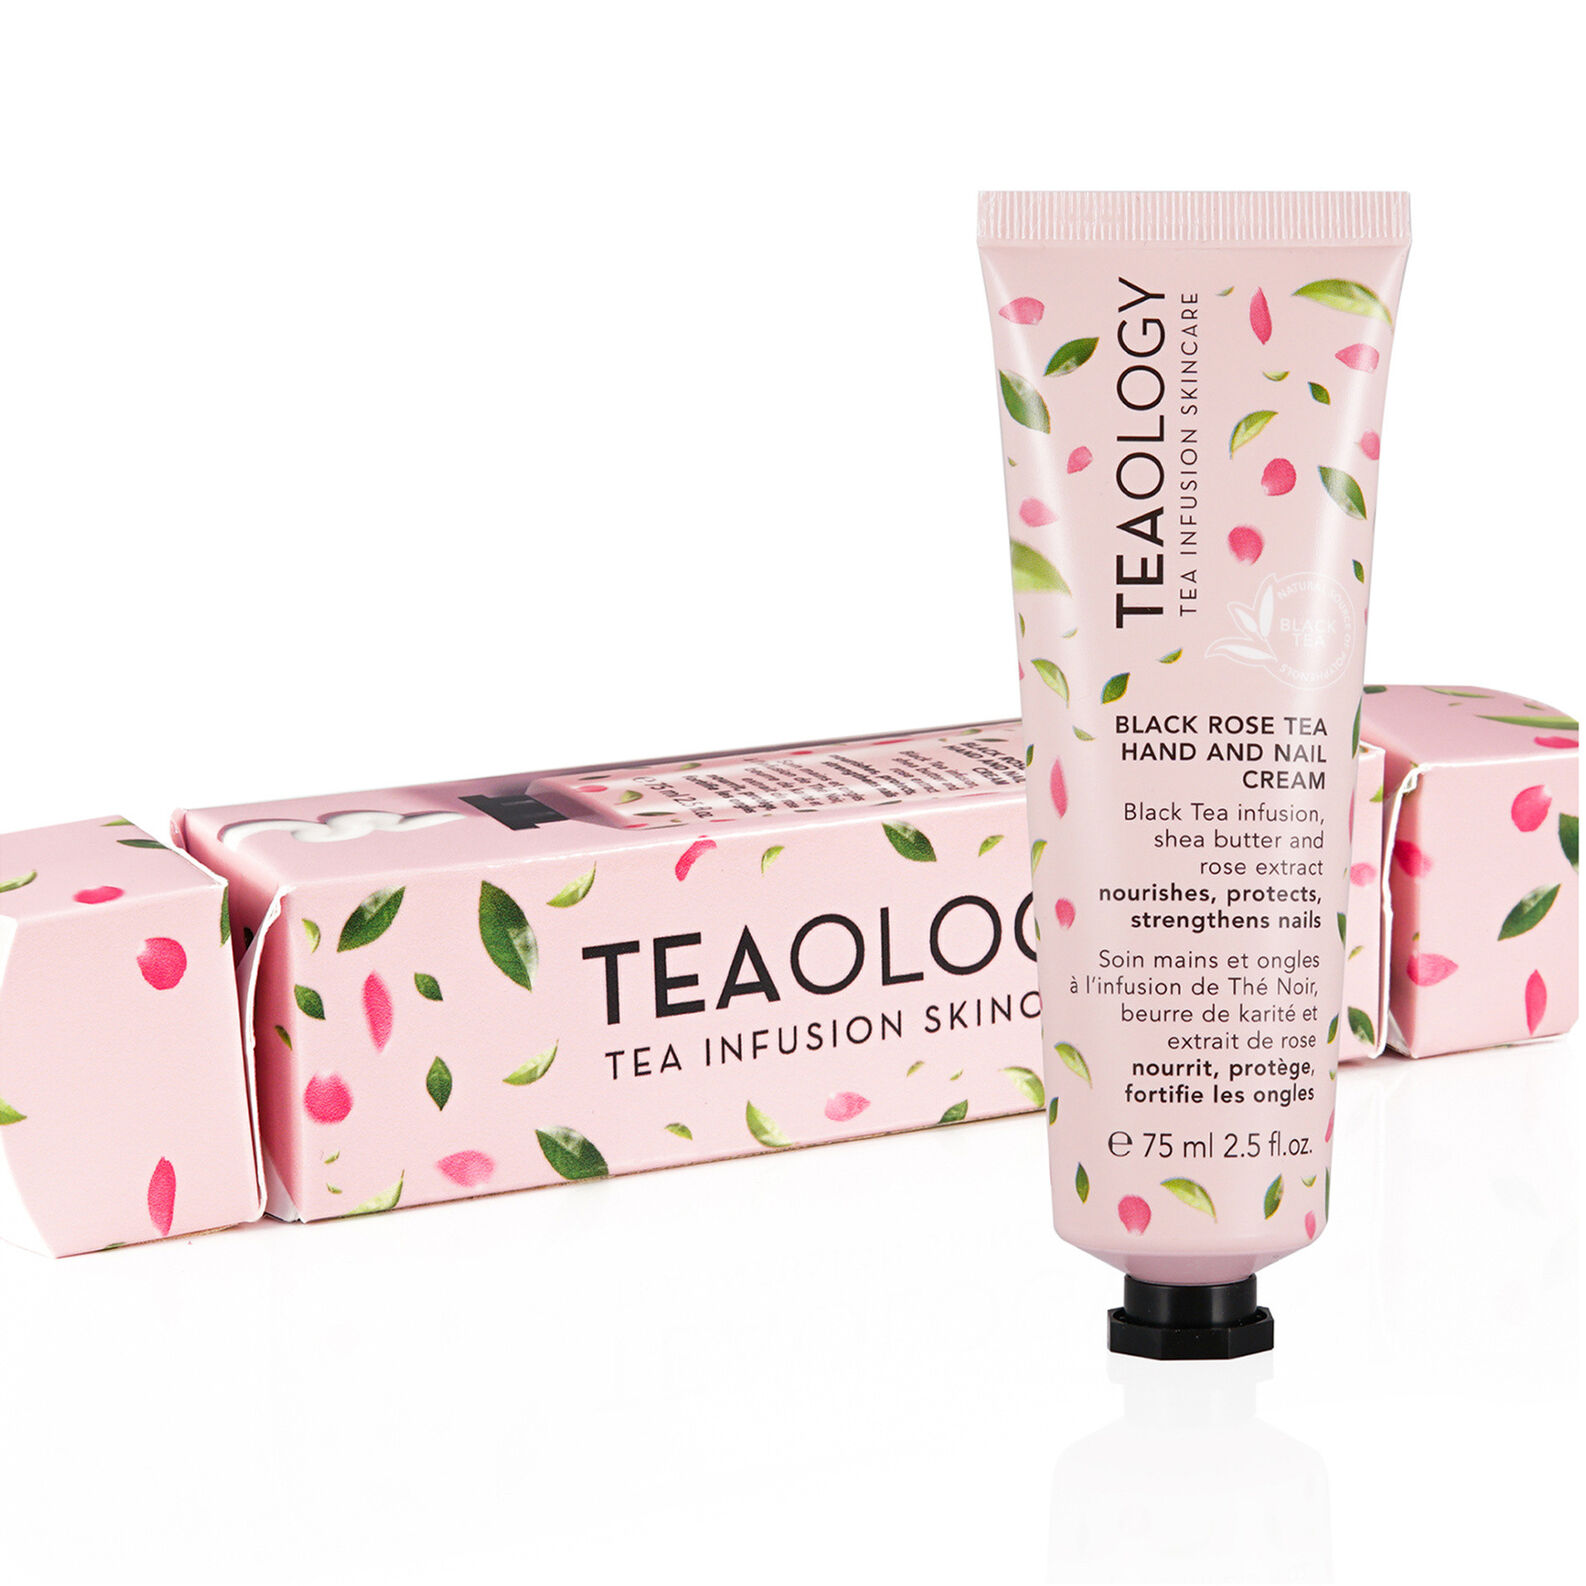 BLACK ROSE TEA HAND AND NAIL CREAM CANDY WRAP